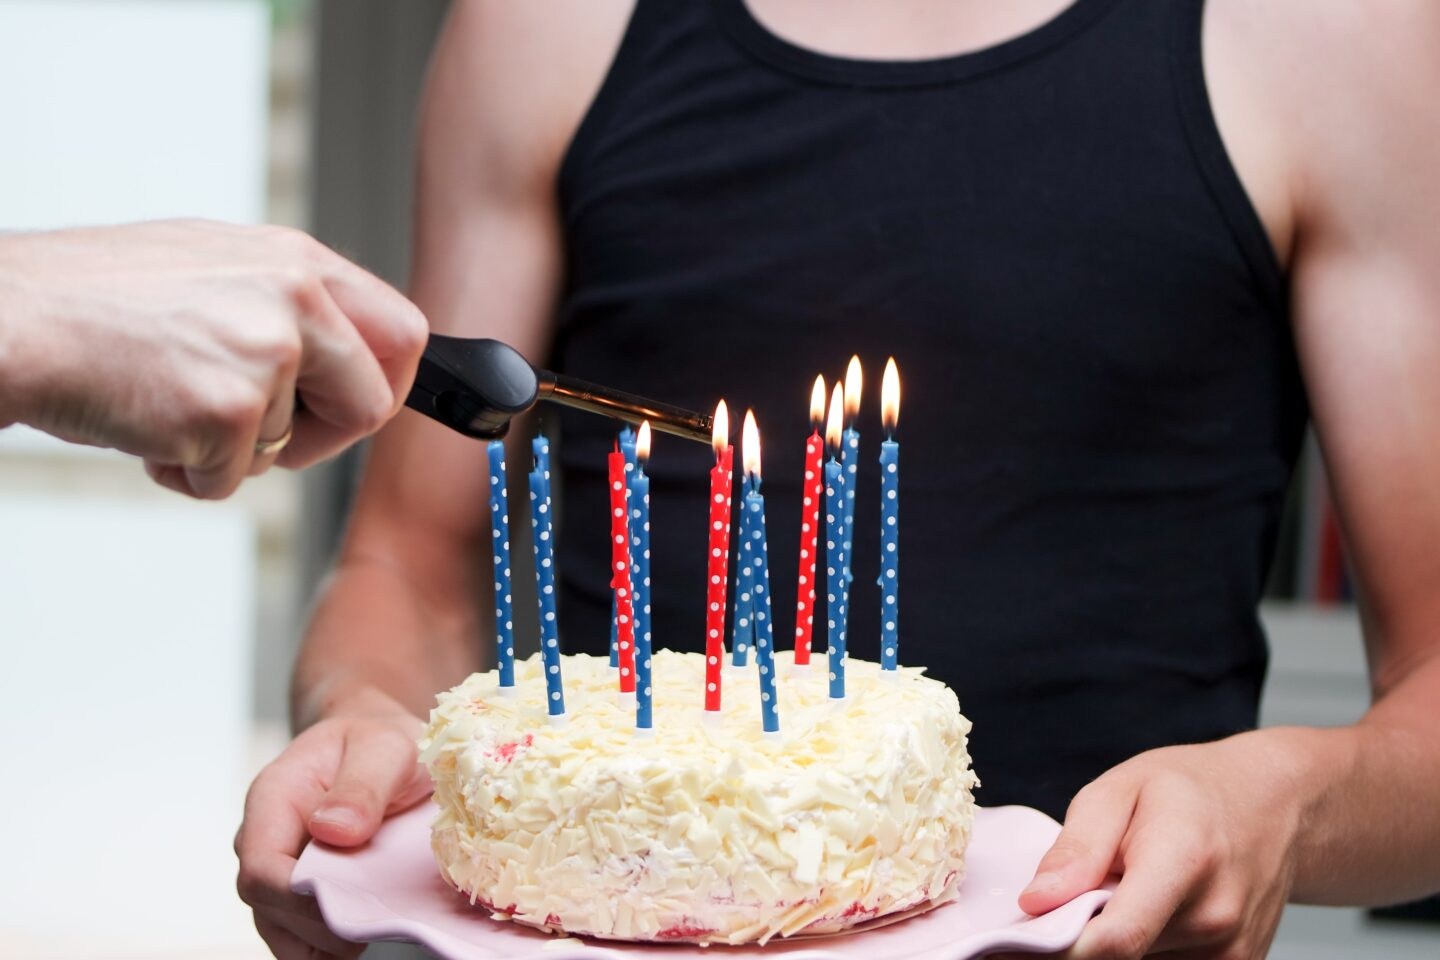 Birthday cake for him and birthday gift ideas for unofficial relationship